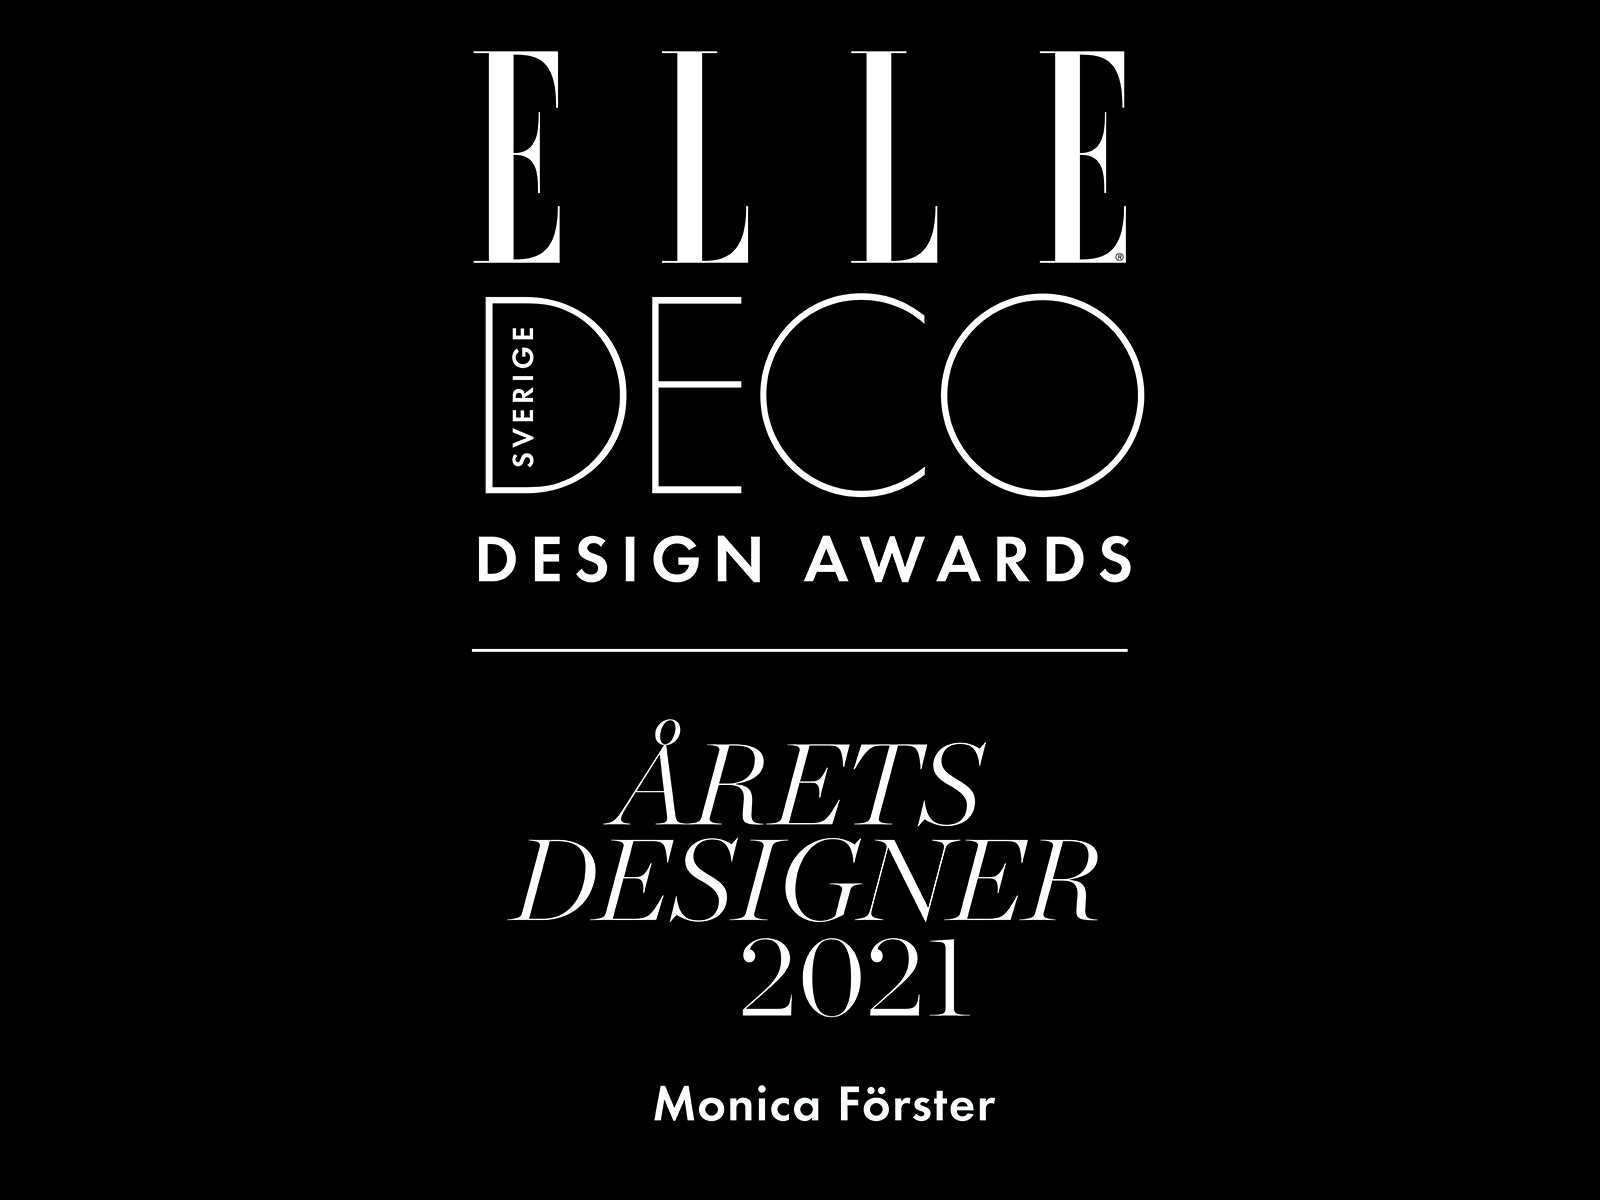 Designer of the Year 2021 - Award Designer of the Year 2021 by ELLE DECORATIONS